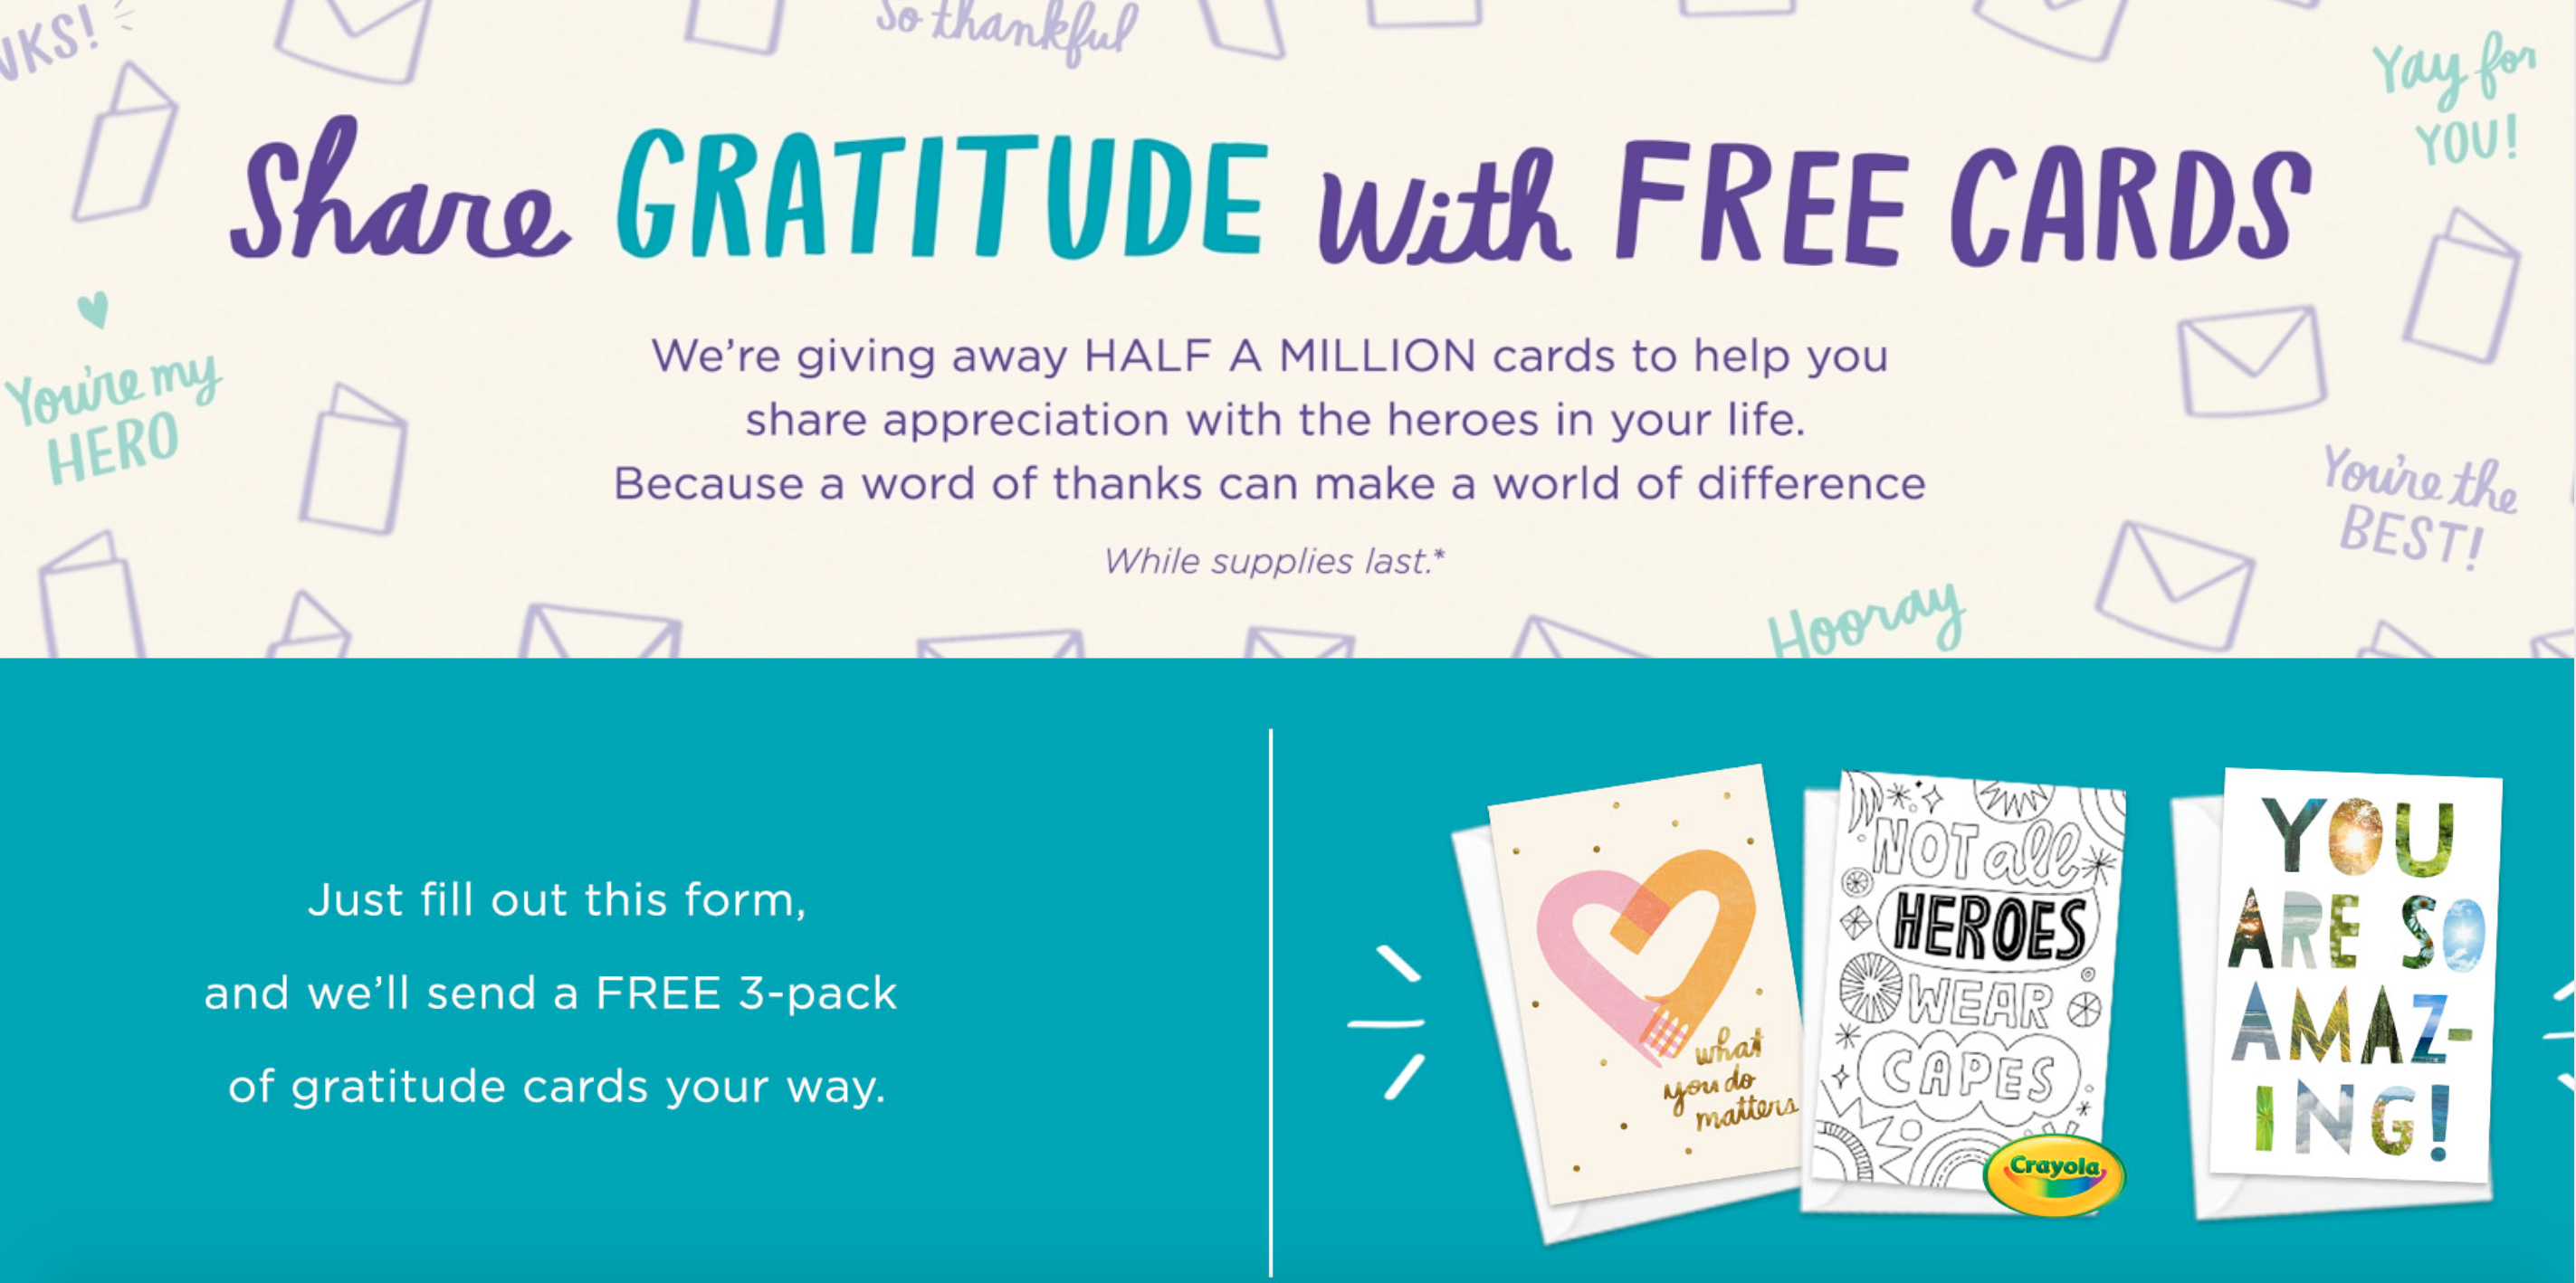 Above: The Hallmark website which features the lovely initiative.